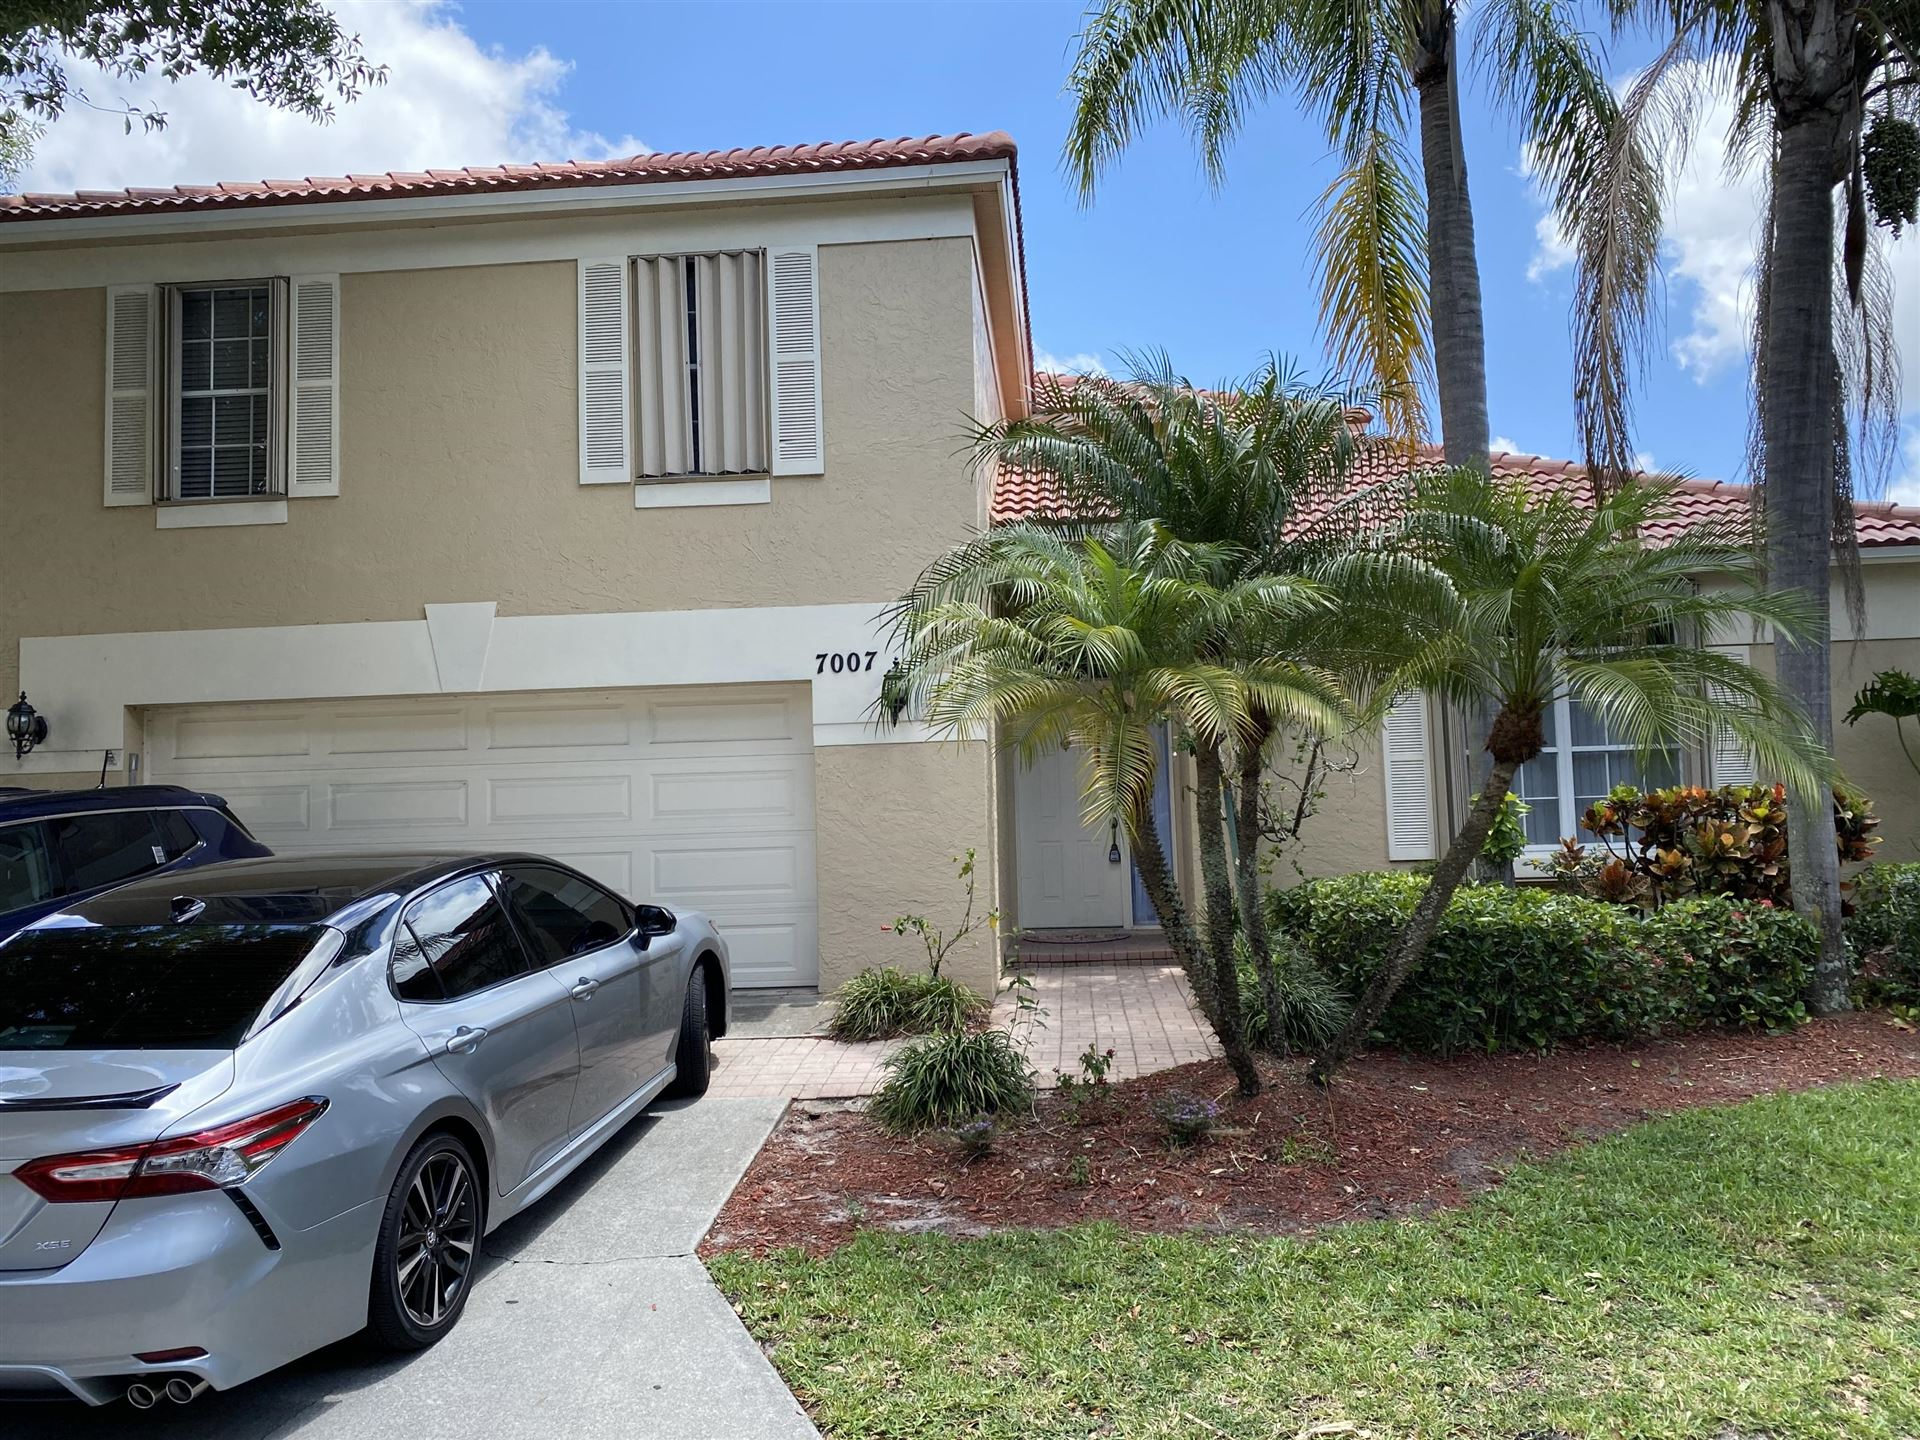 7007 Galleon Cove Circle, Riviera Beach, FL 33418 - #: RX-10625416